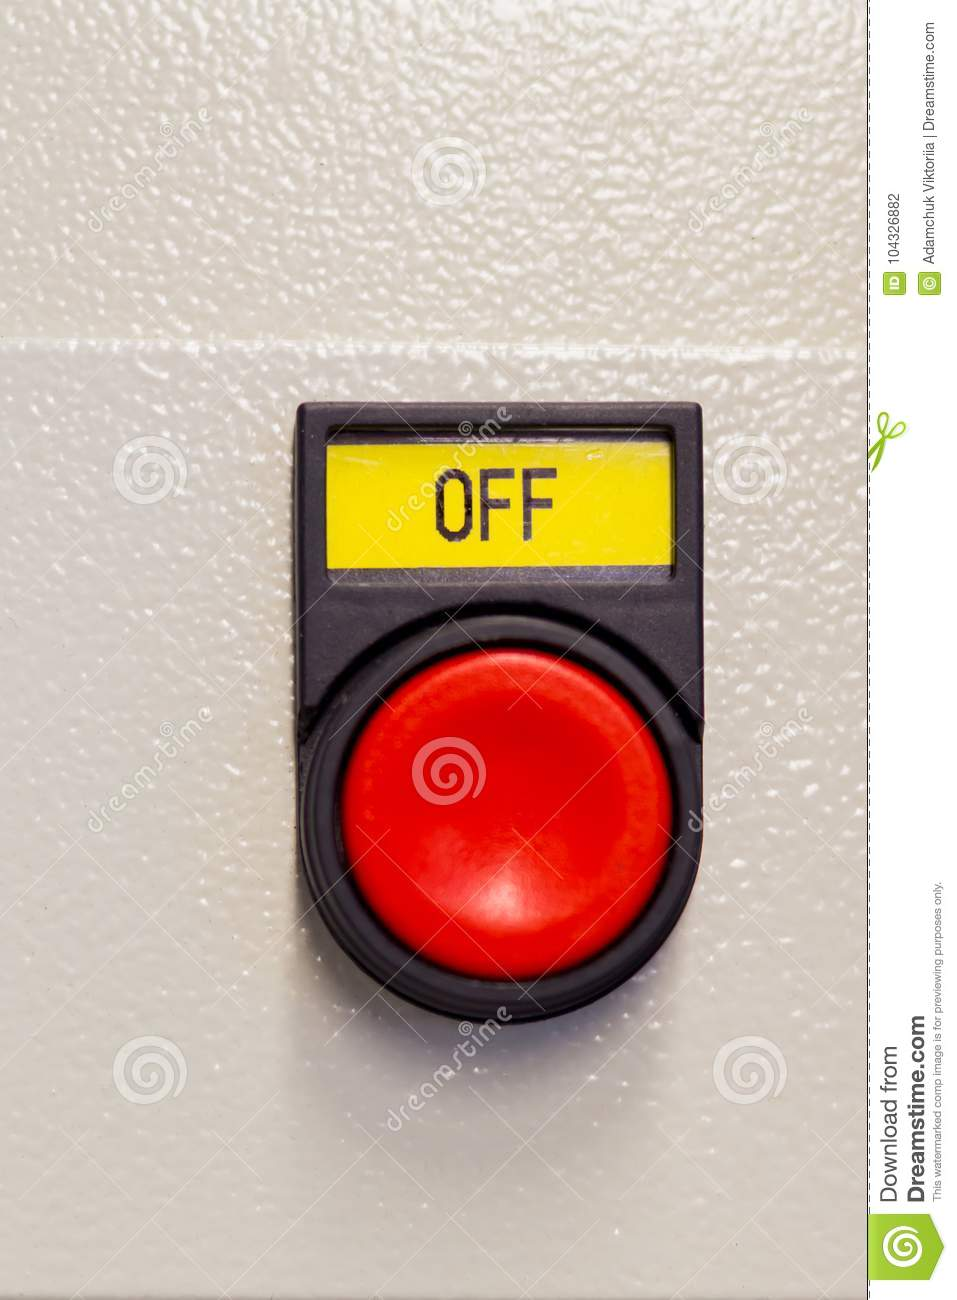 push red button off on device